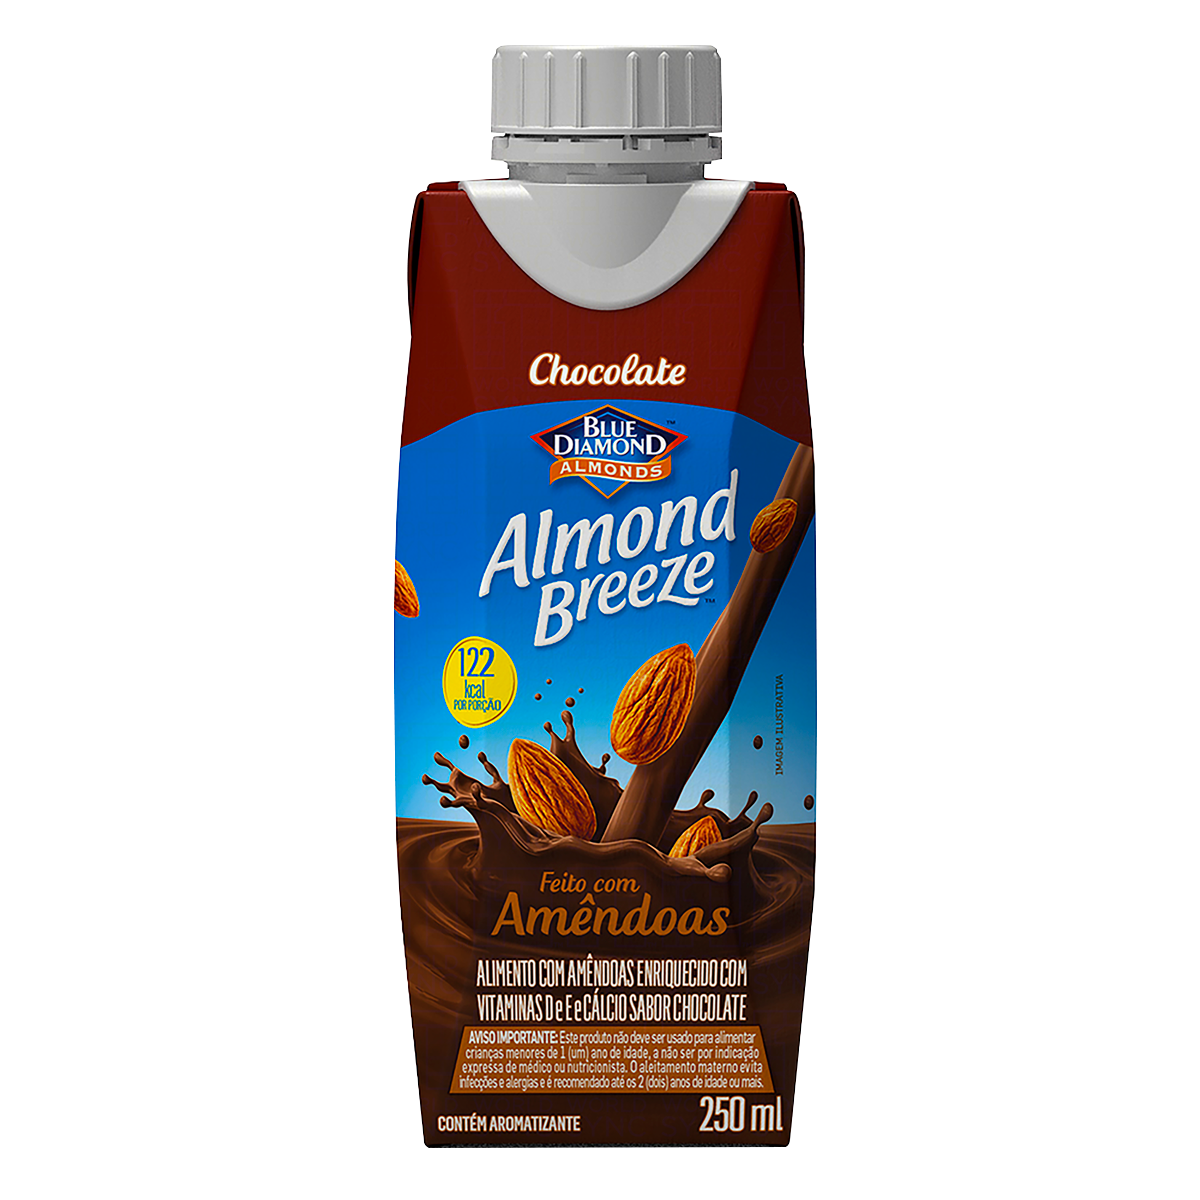 Bebida à Base de Amêndoa Chocolate Blue Diamond Almond Breeze Caixa 250ml